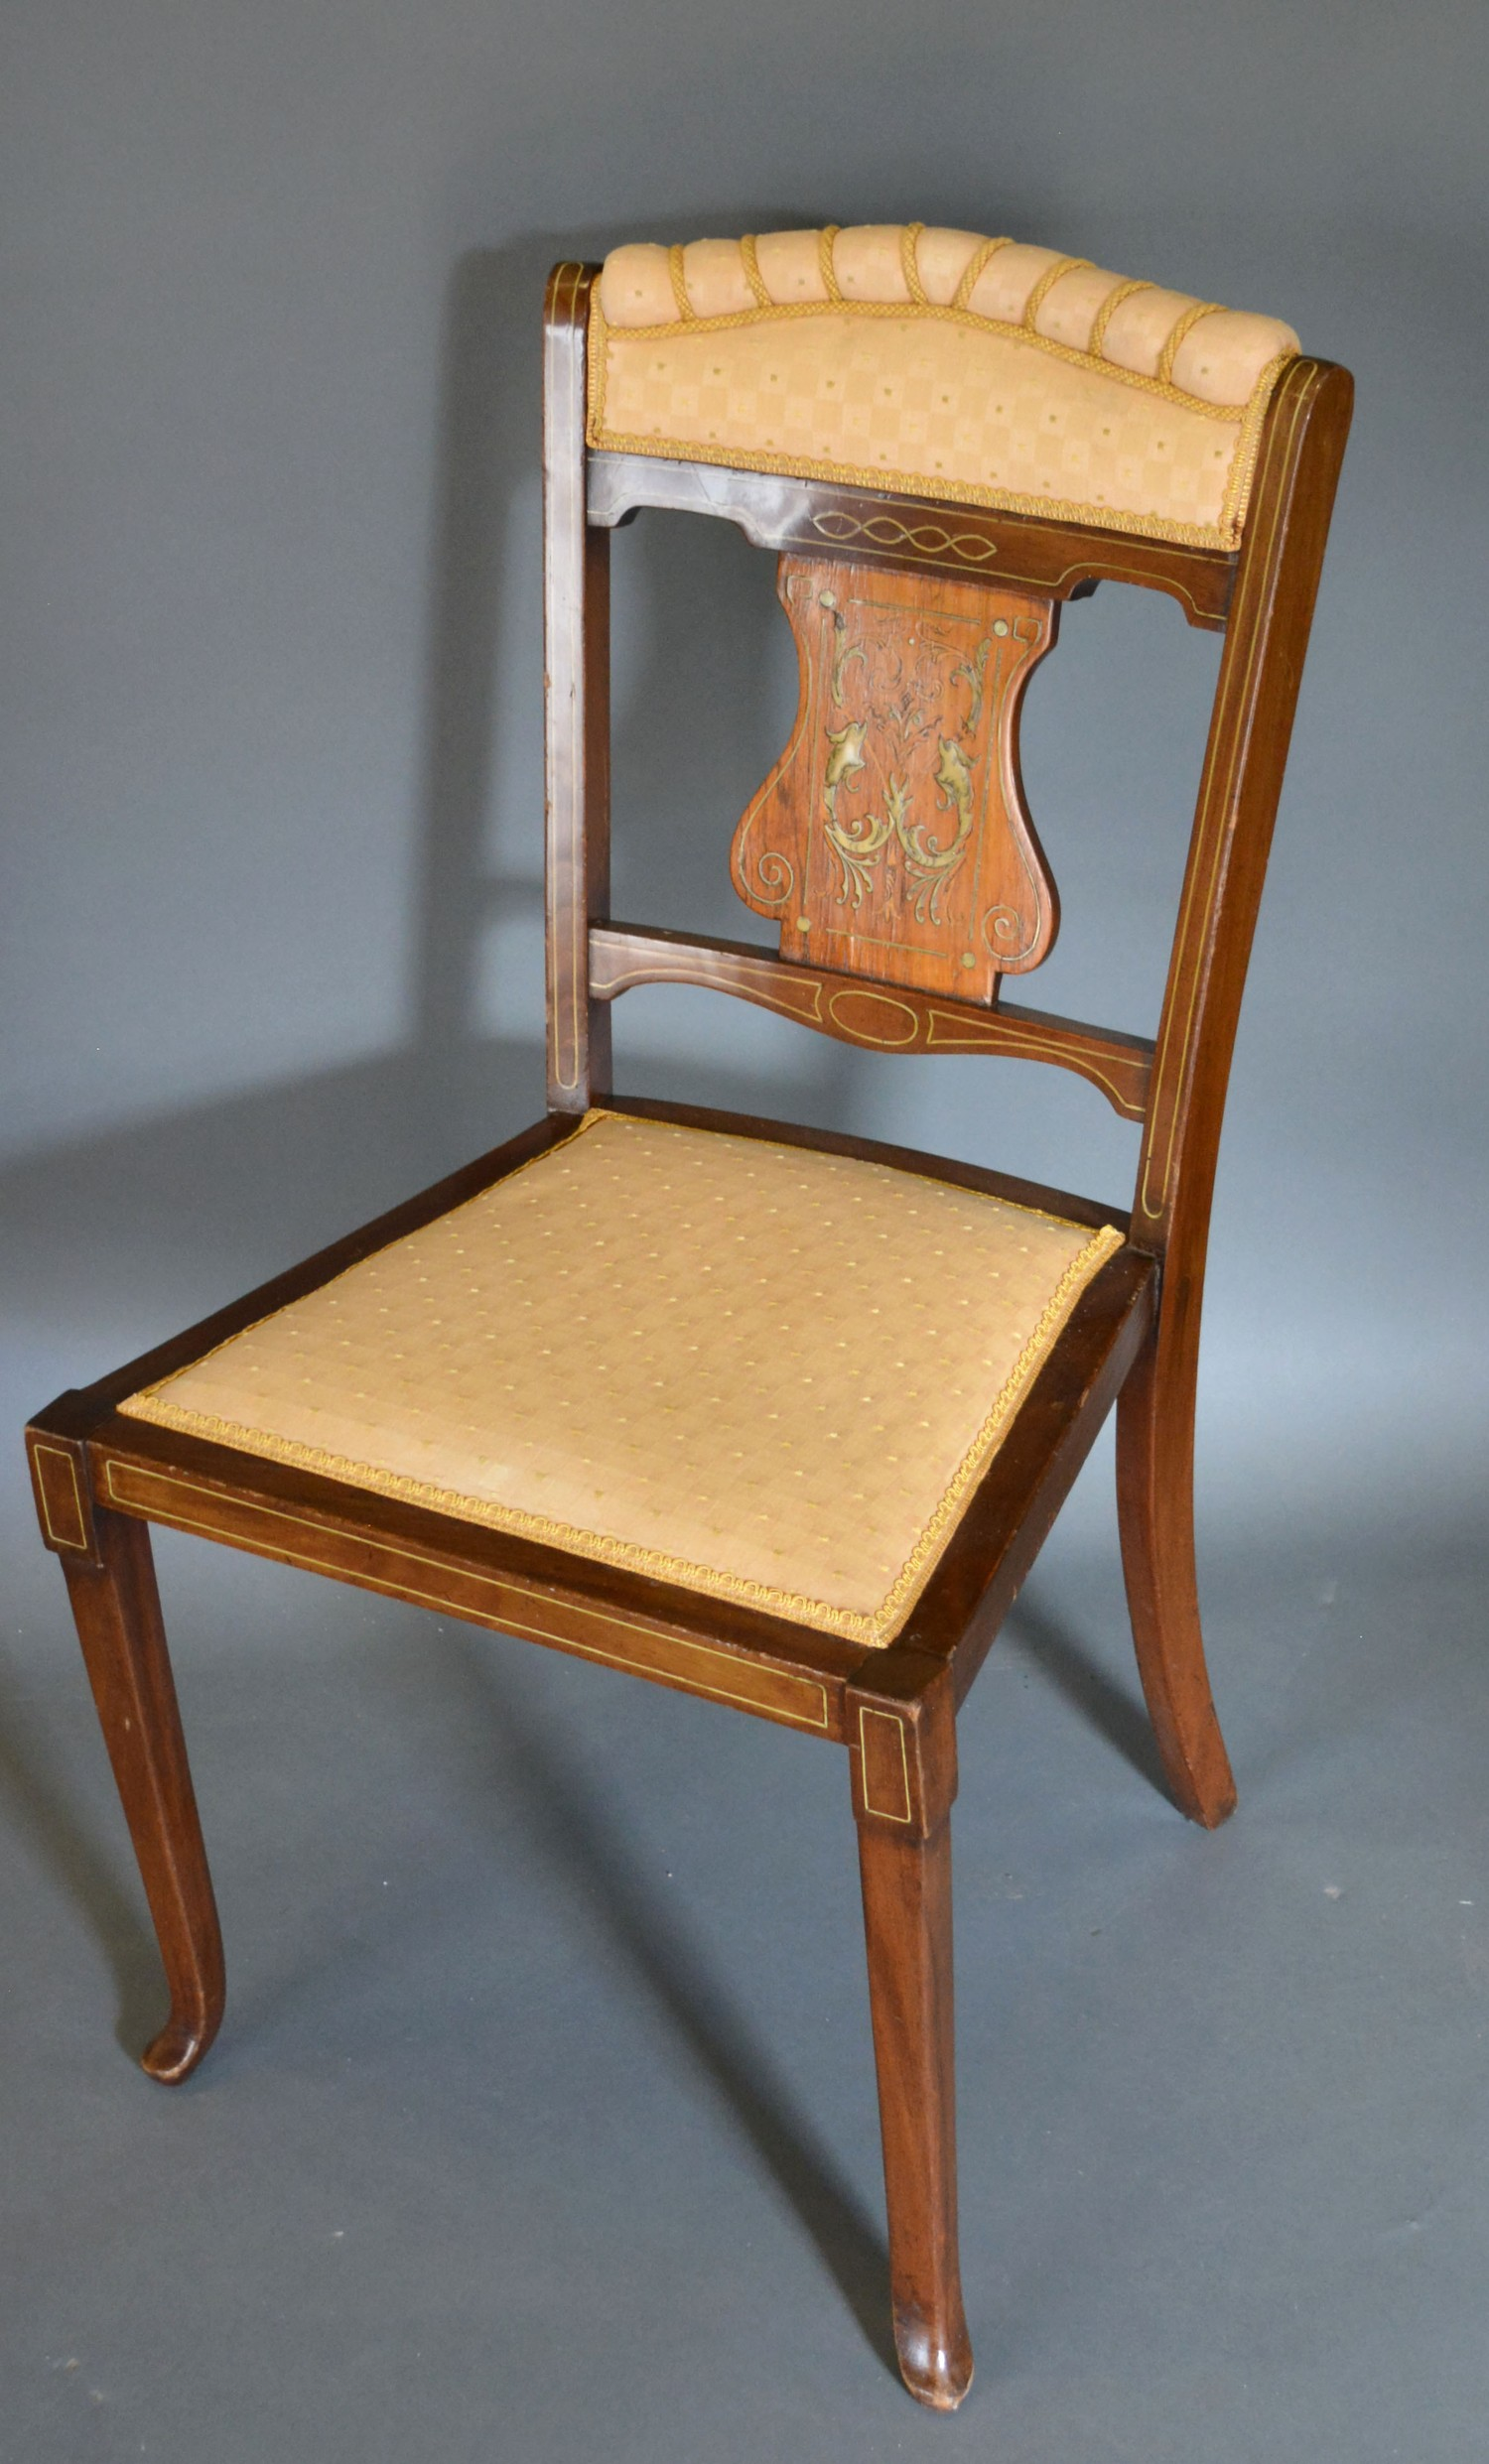 An Edwardian Mahogany Marquetry Inlaid Side Chair with cabriole legs and pad feet